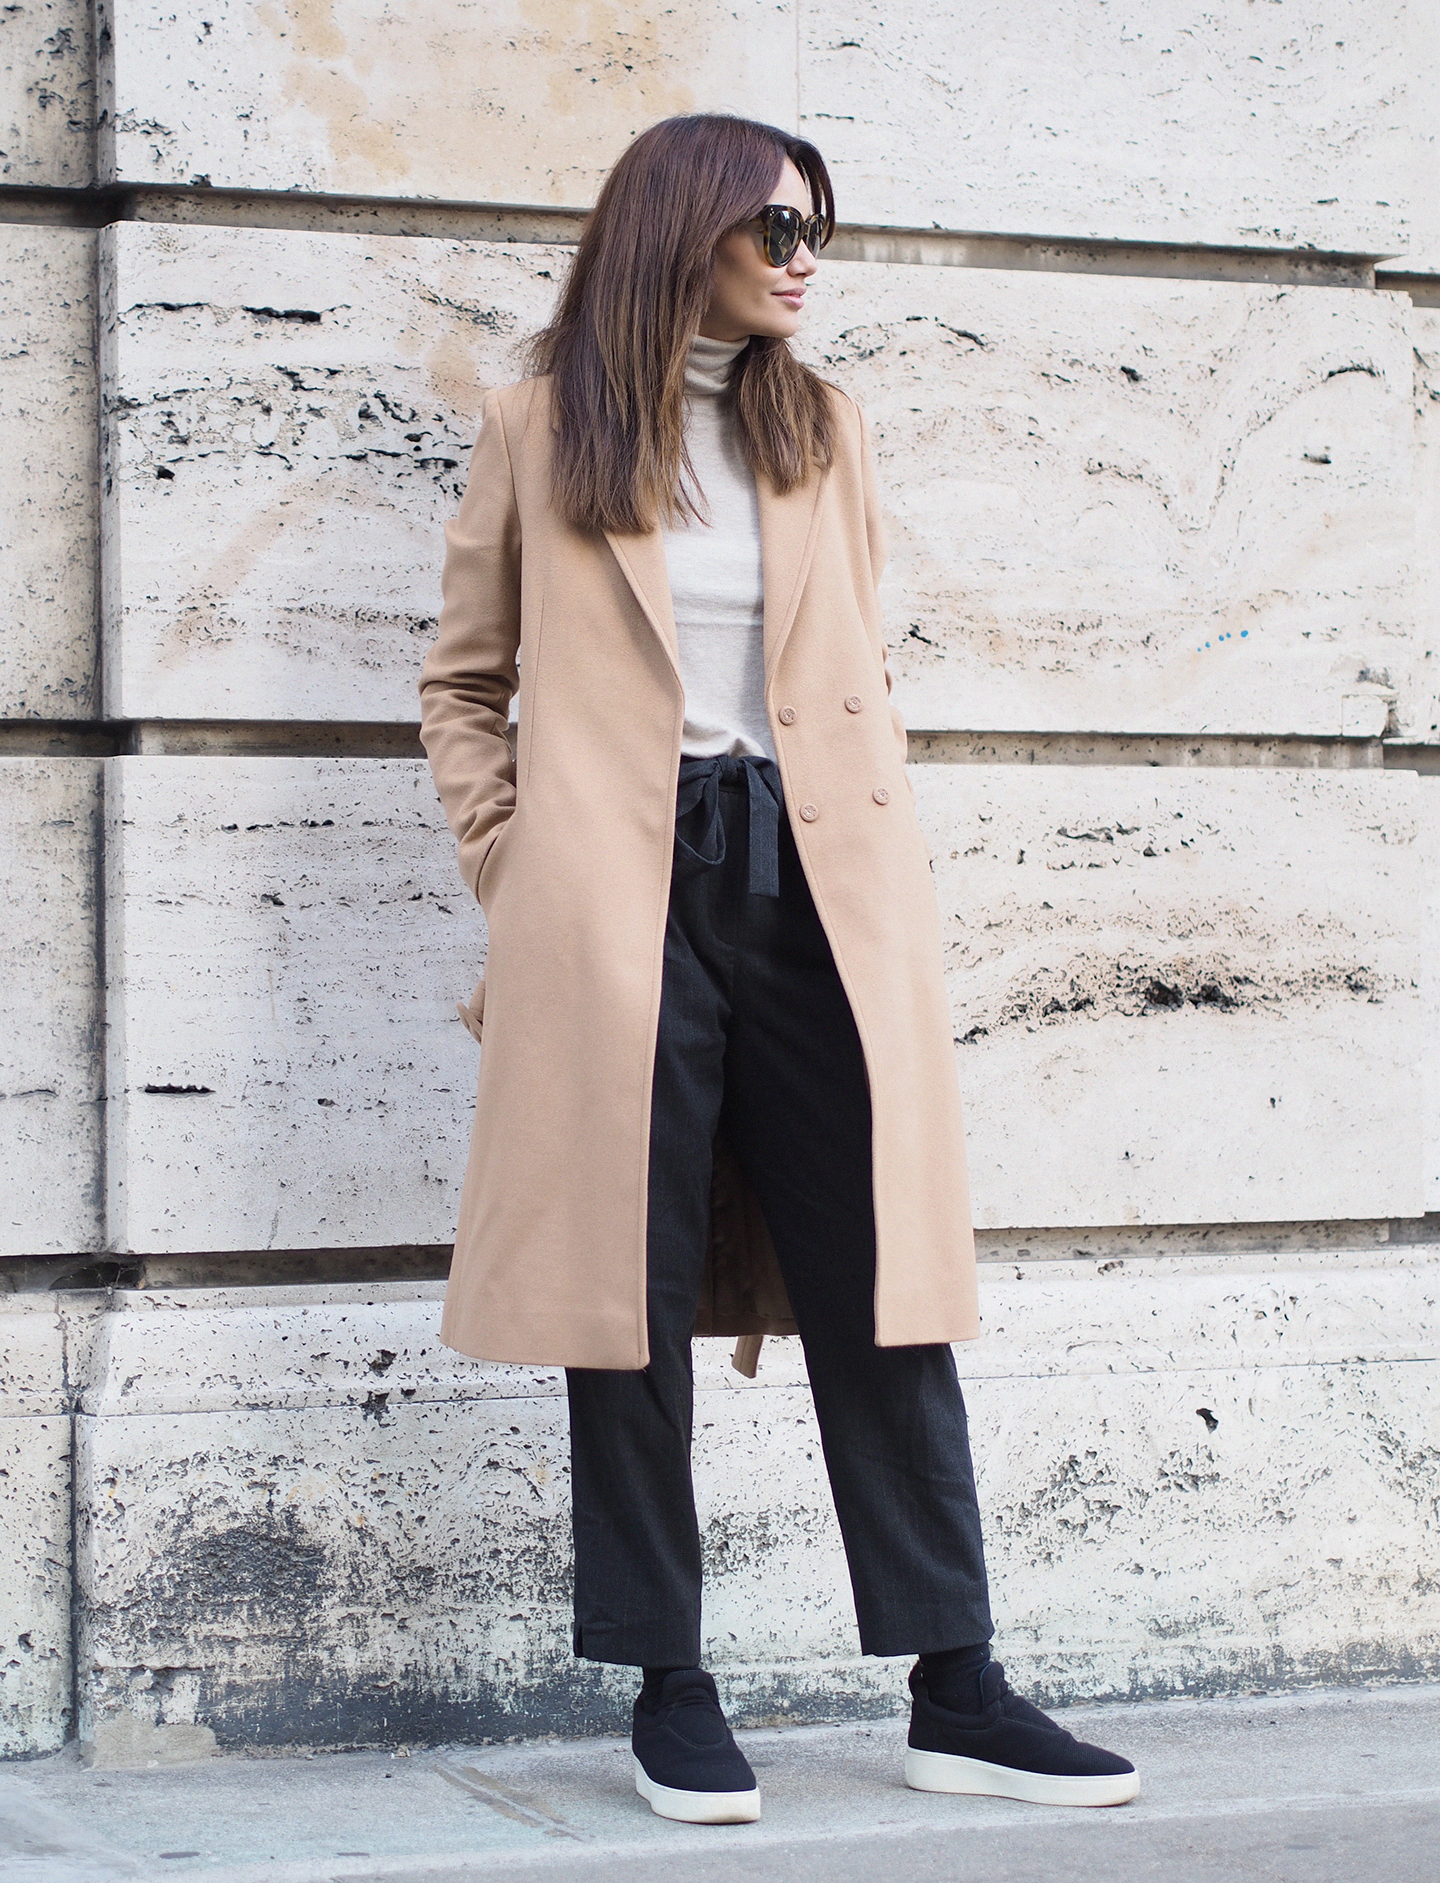 Funda Christophersen looks cool and sophisticated in cropped black trousers and a cute white turtleneck top. Coat: Designers Remix, Top: Second Female, Trousers: Zara.